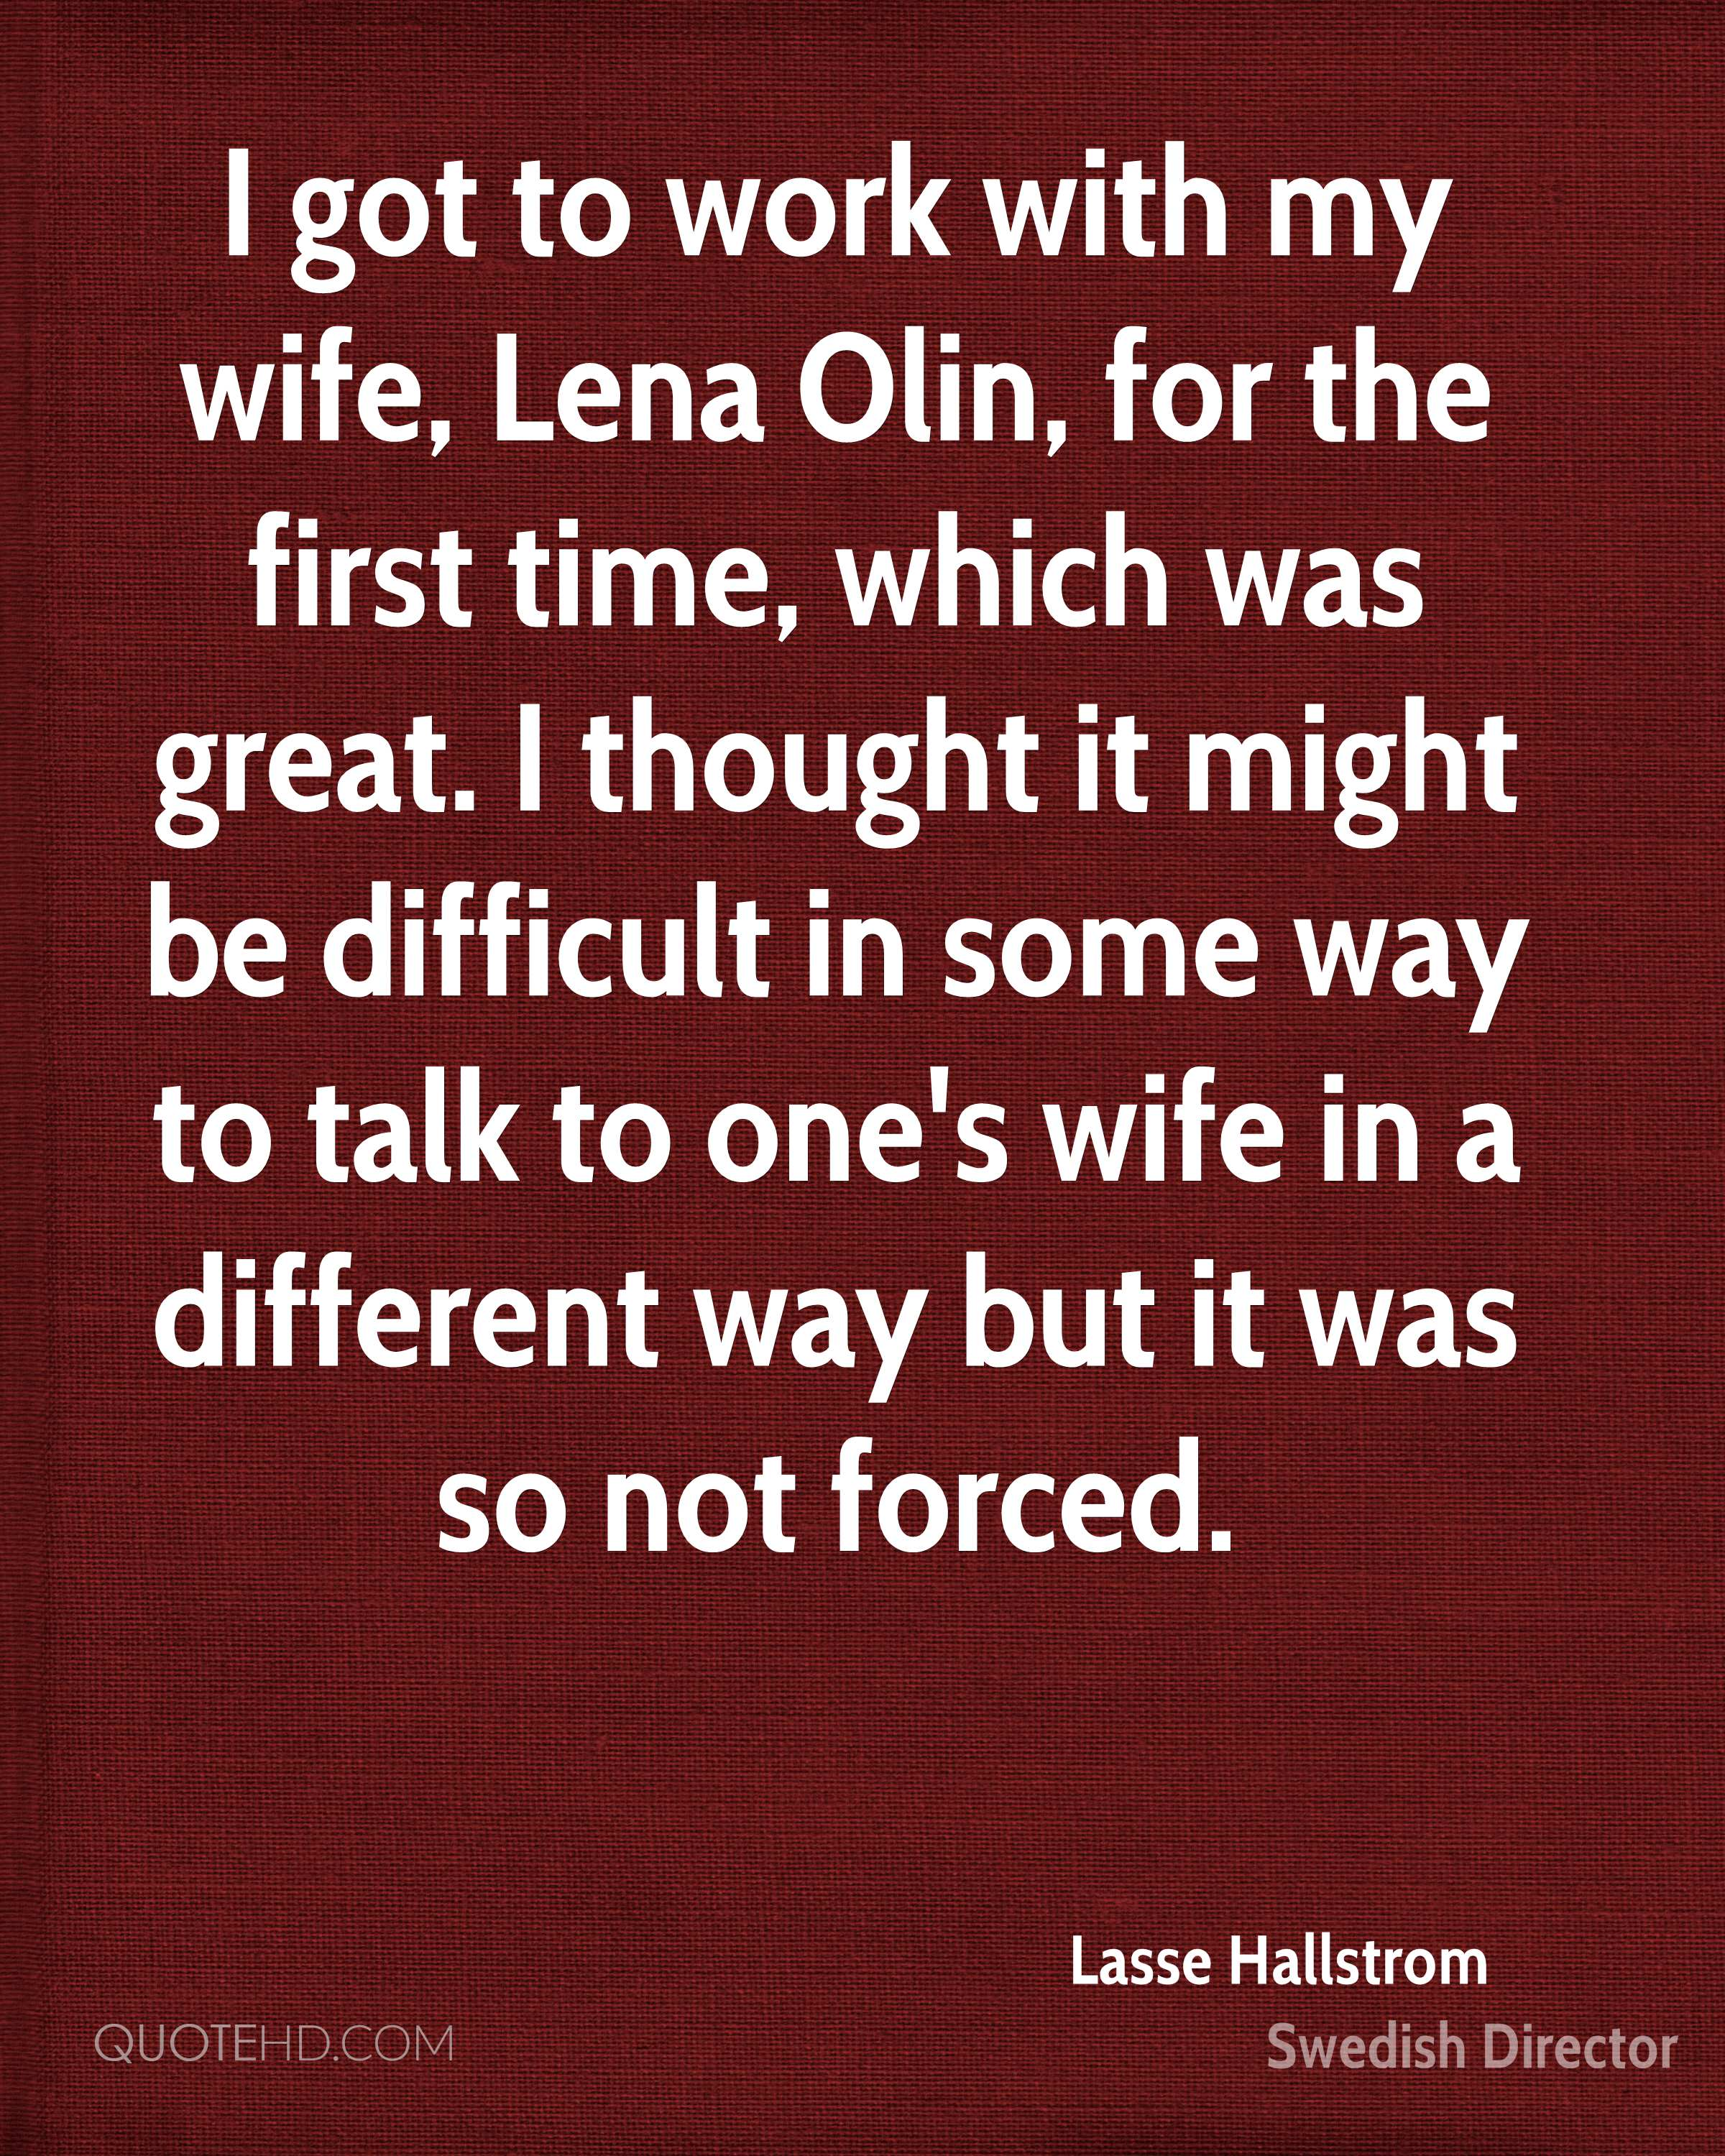 I got to work with my wife, Lena Olin, for the first time, which was great. I thought it might be difficult in some way to talk to one's wife in a different way but it was so not forced.